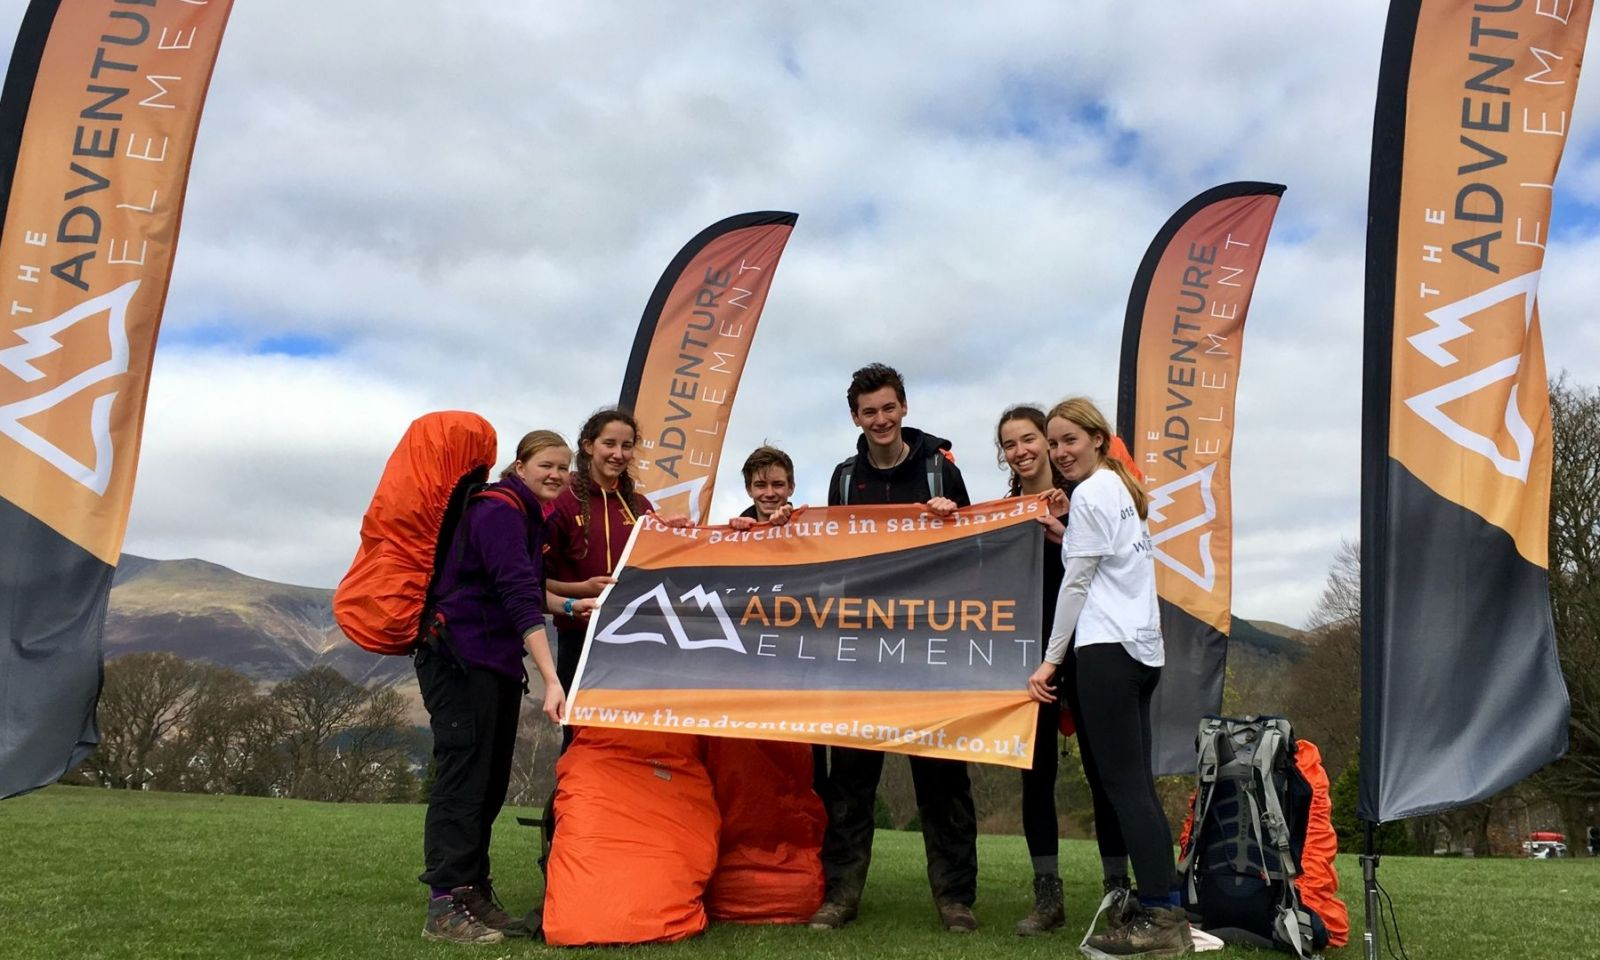 Team smiling and looking happy holding company flag after completing their DofE expedition.